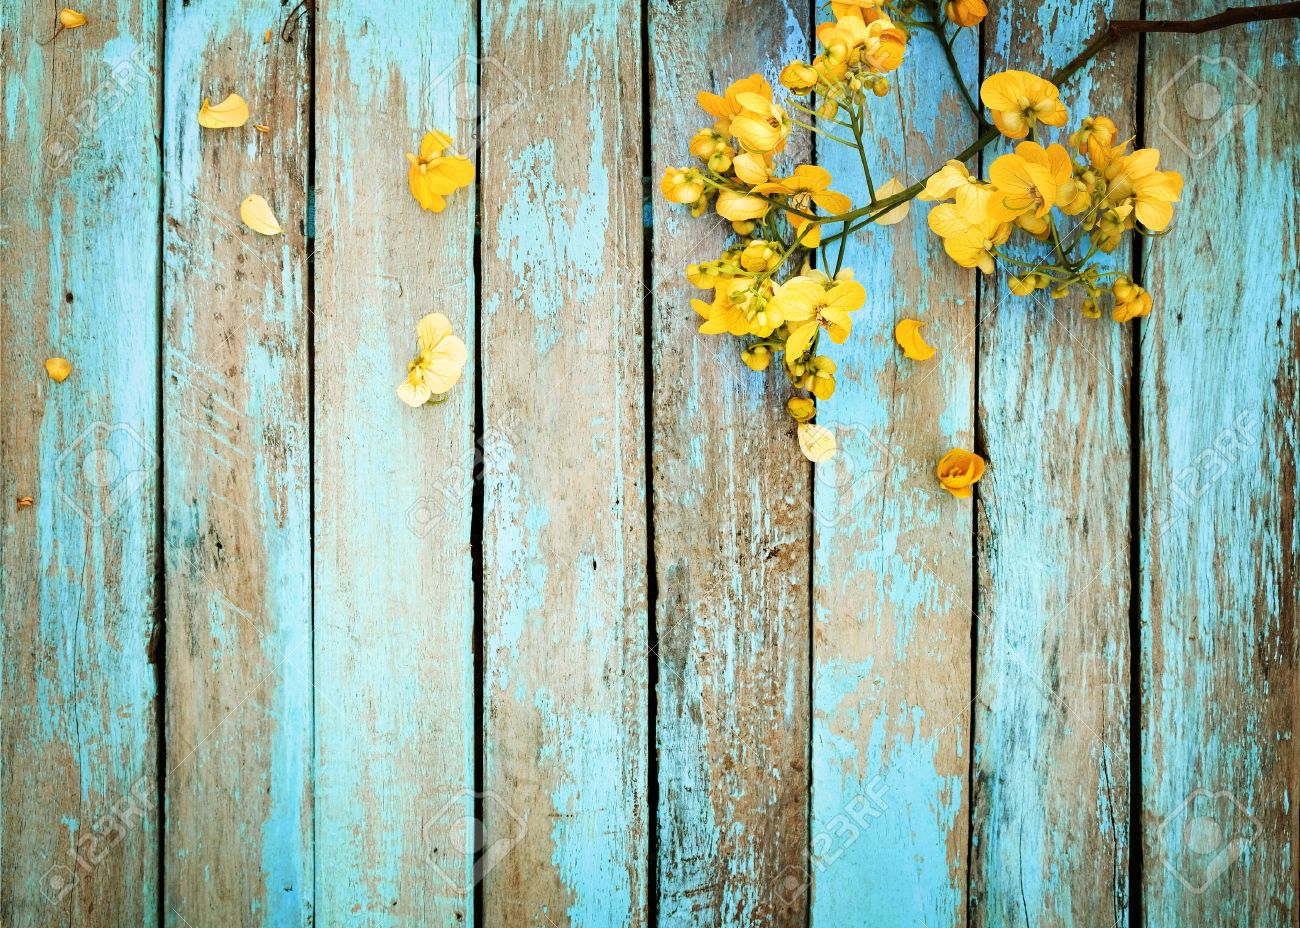 Yellow flowers on vintage wooden background border design vintage stock photo yellow flowers on vintage wooden background border design vintage color tone concept flower of spring or summer background mightylinksfo